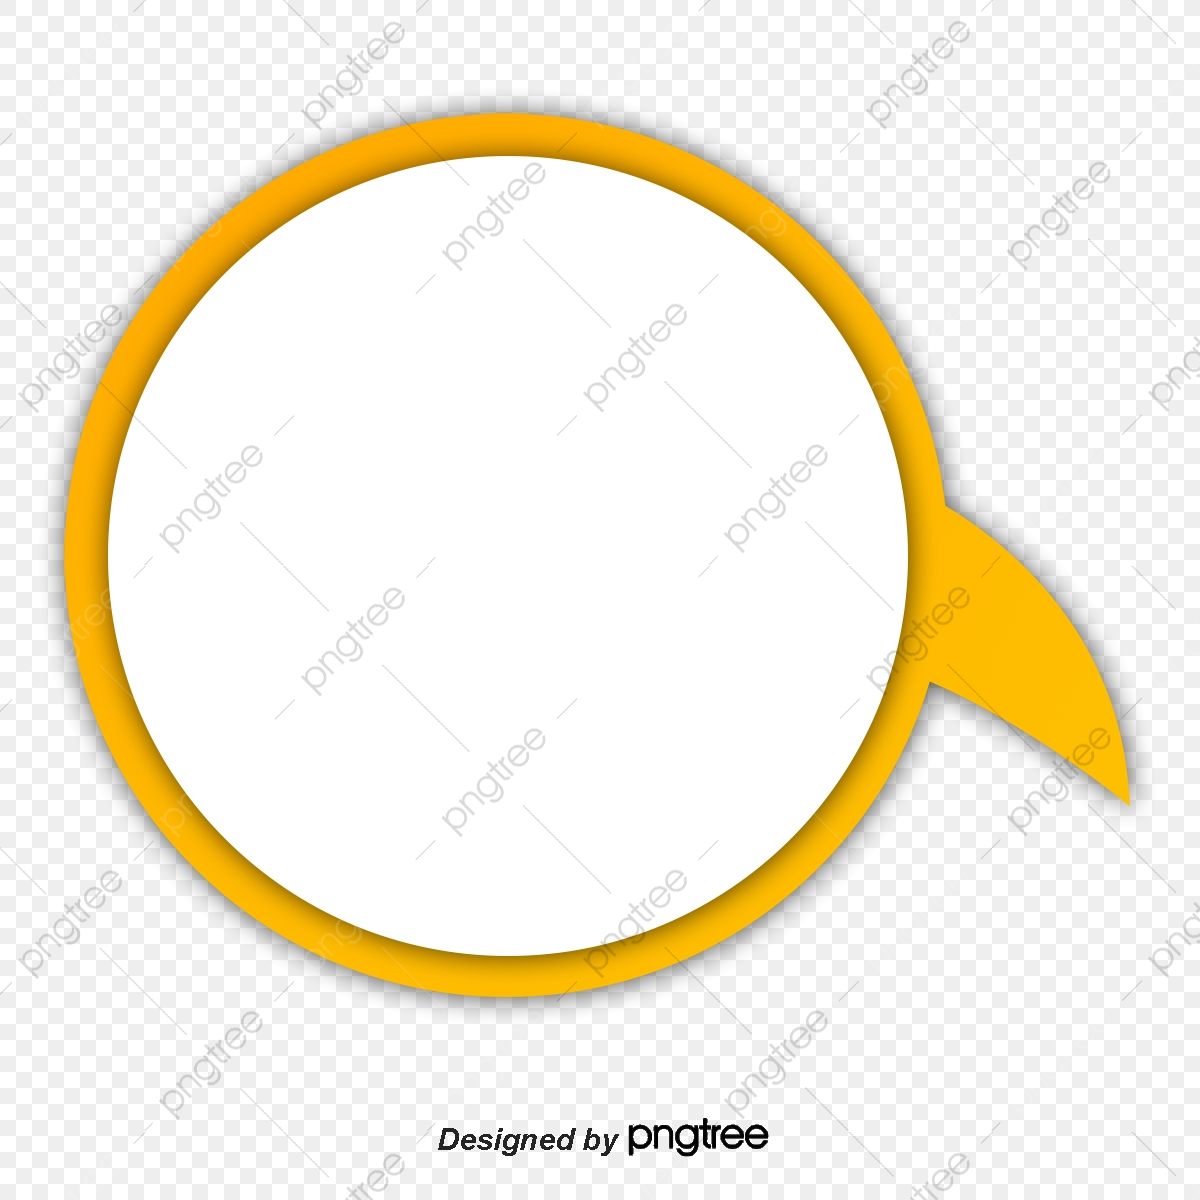 Frame circle clipart. Yellow png